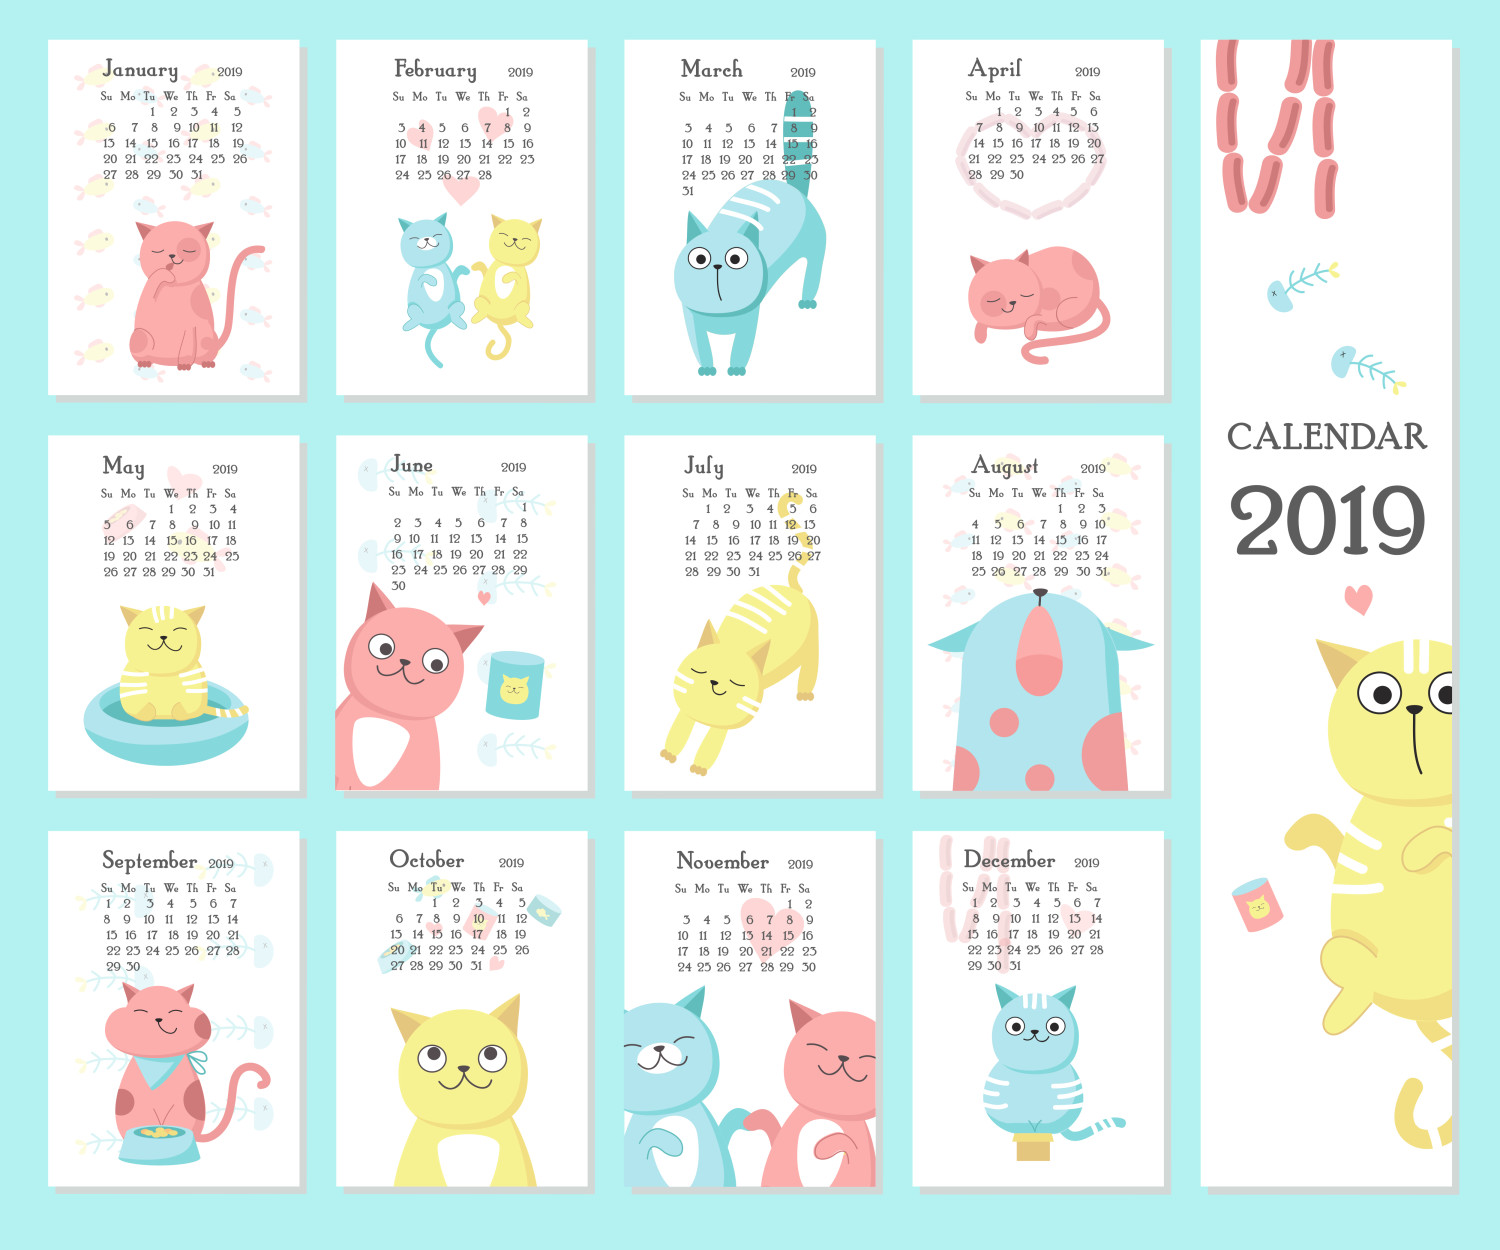 kalendar kucing cute